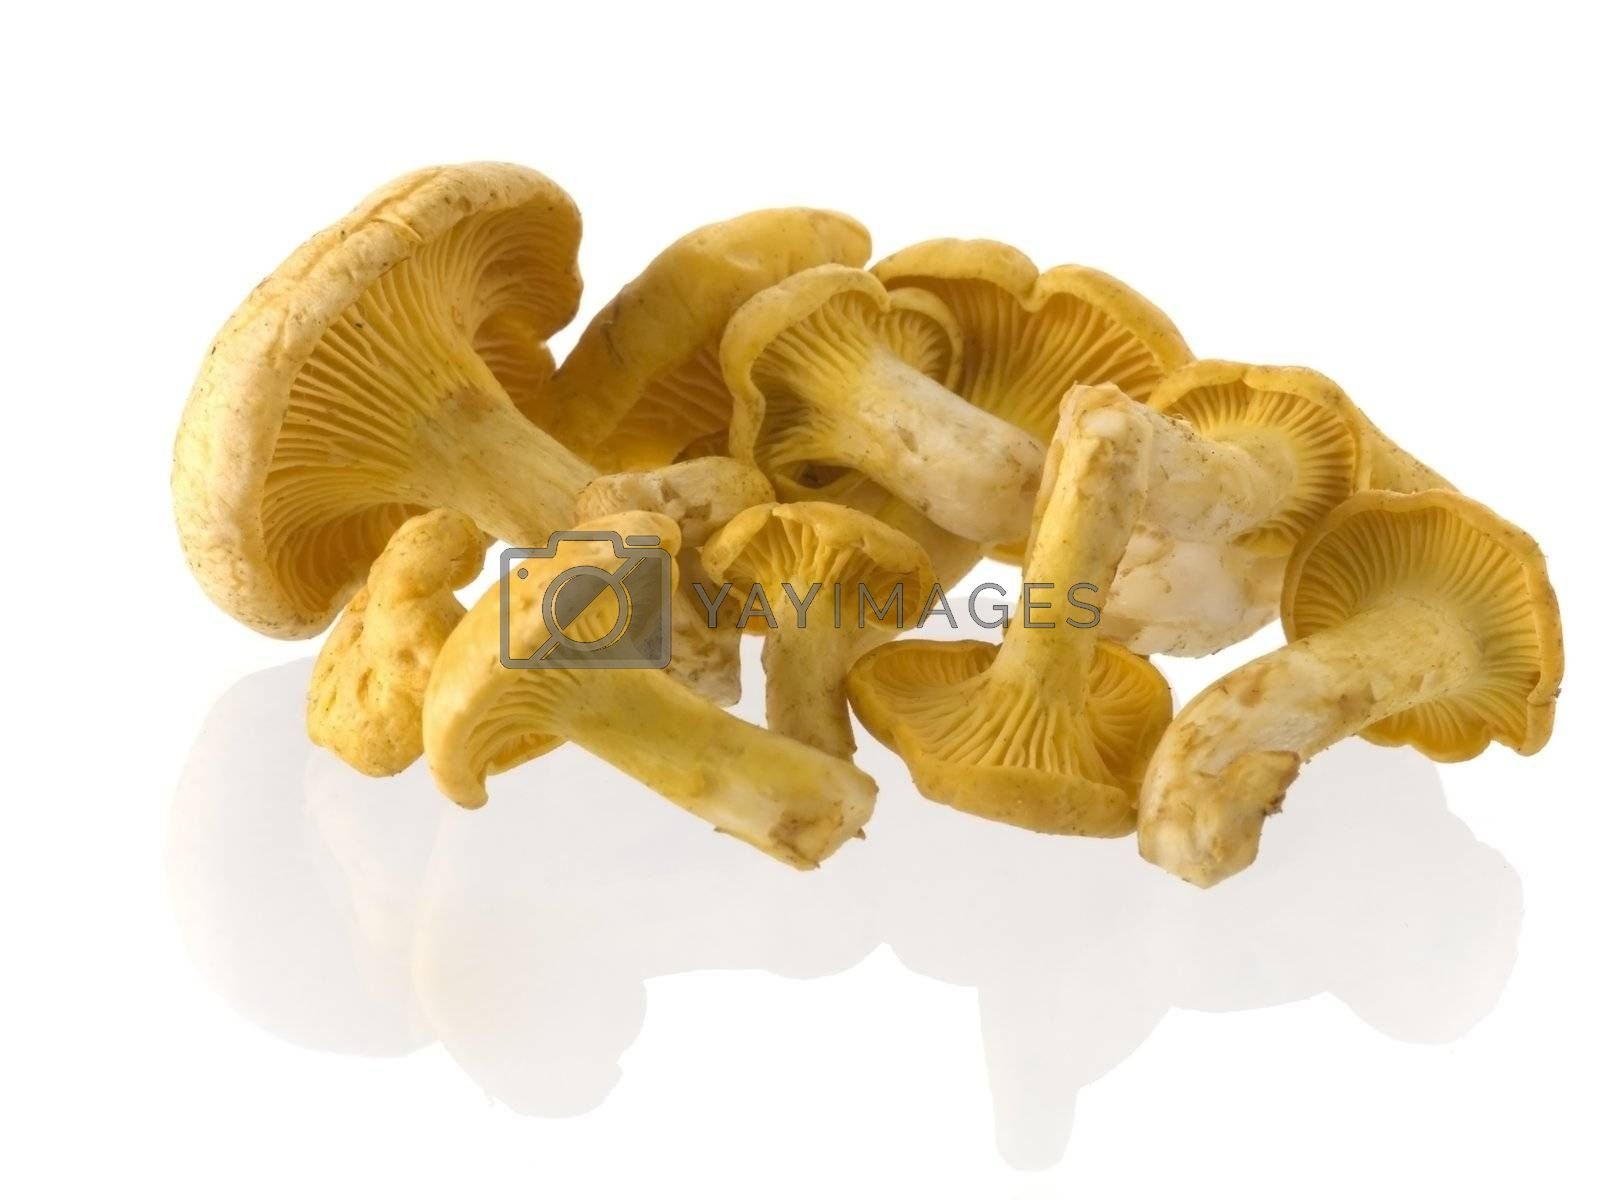 Group of edible mushrooms isolated on white background